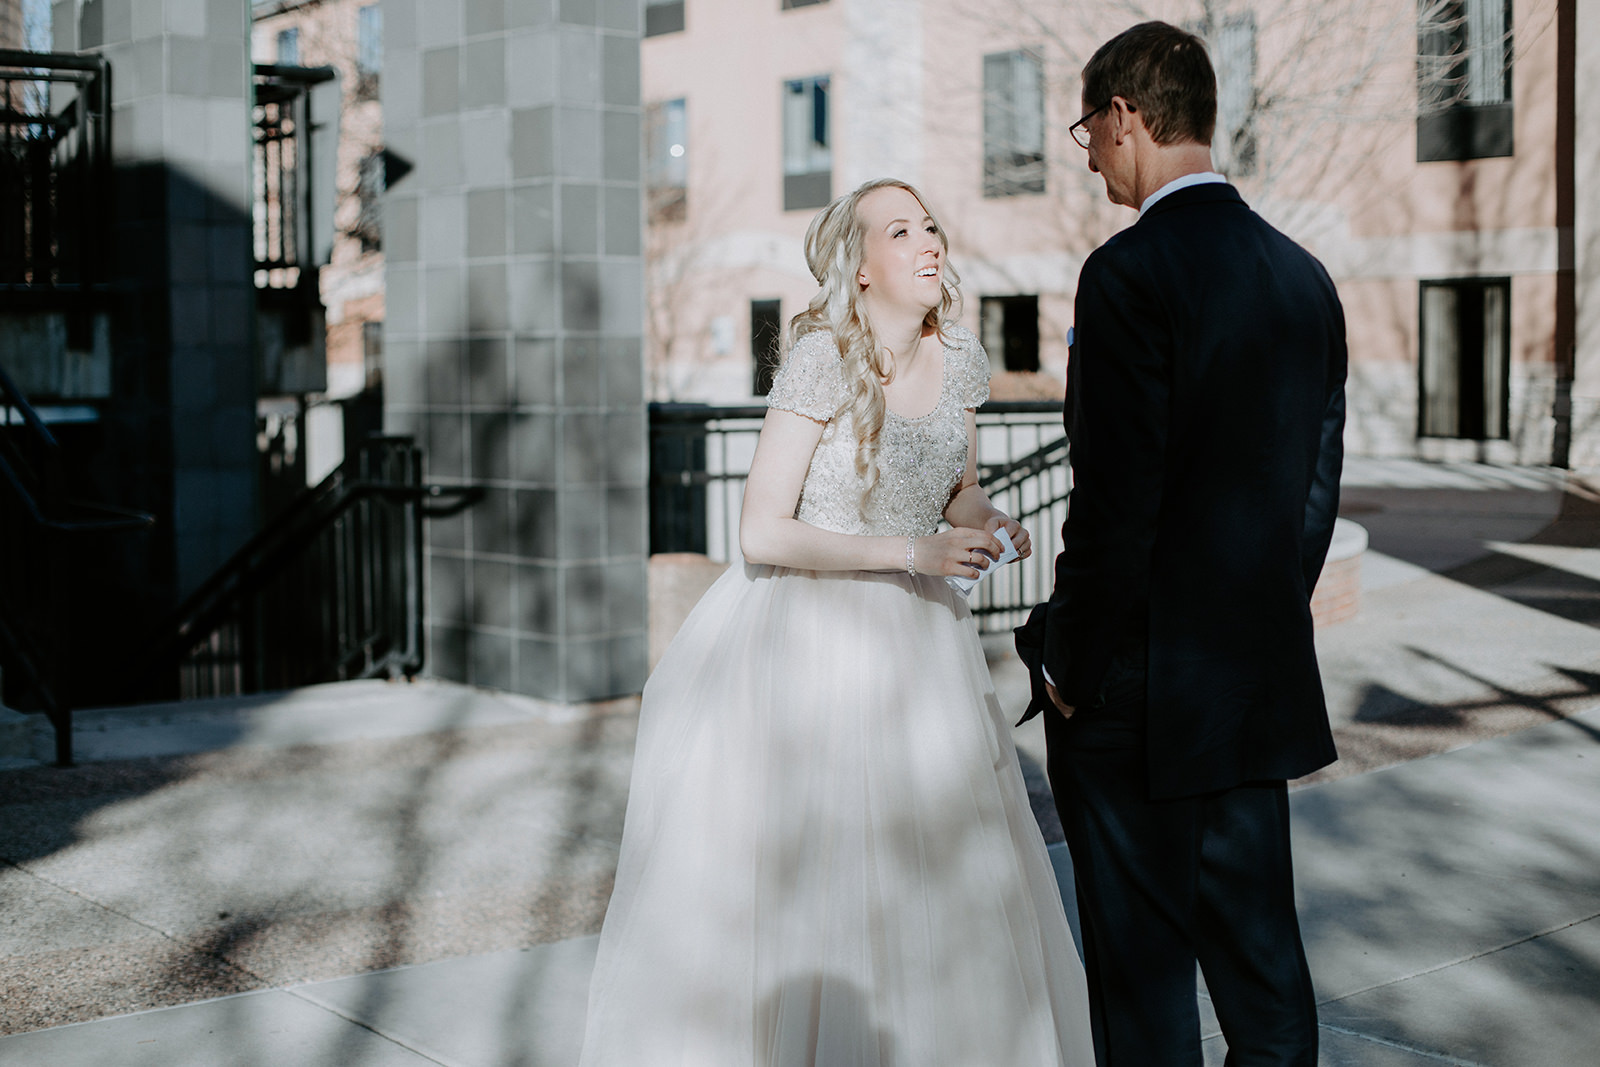 Bride tears up after seeing her dad for the first time in her dress